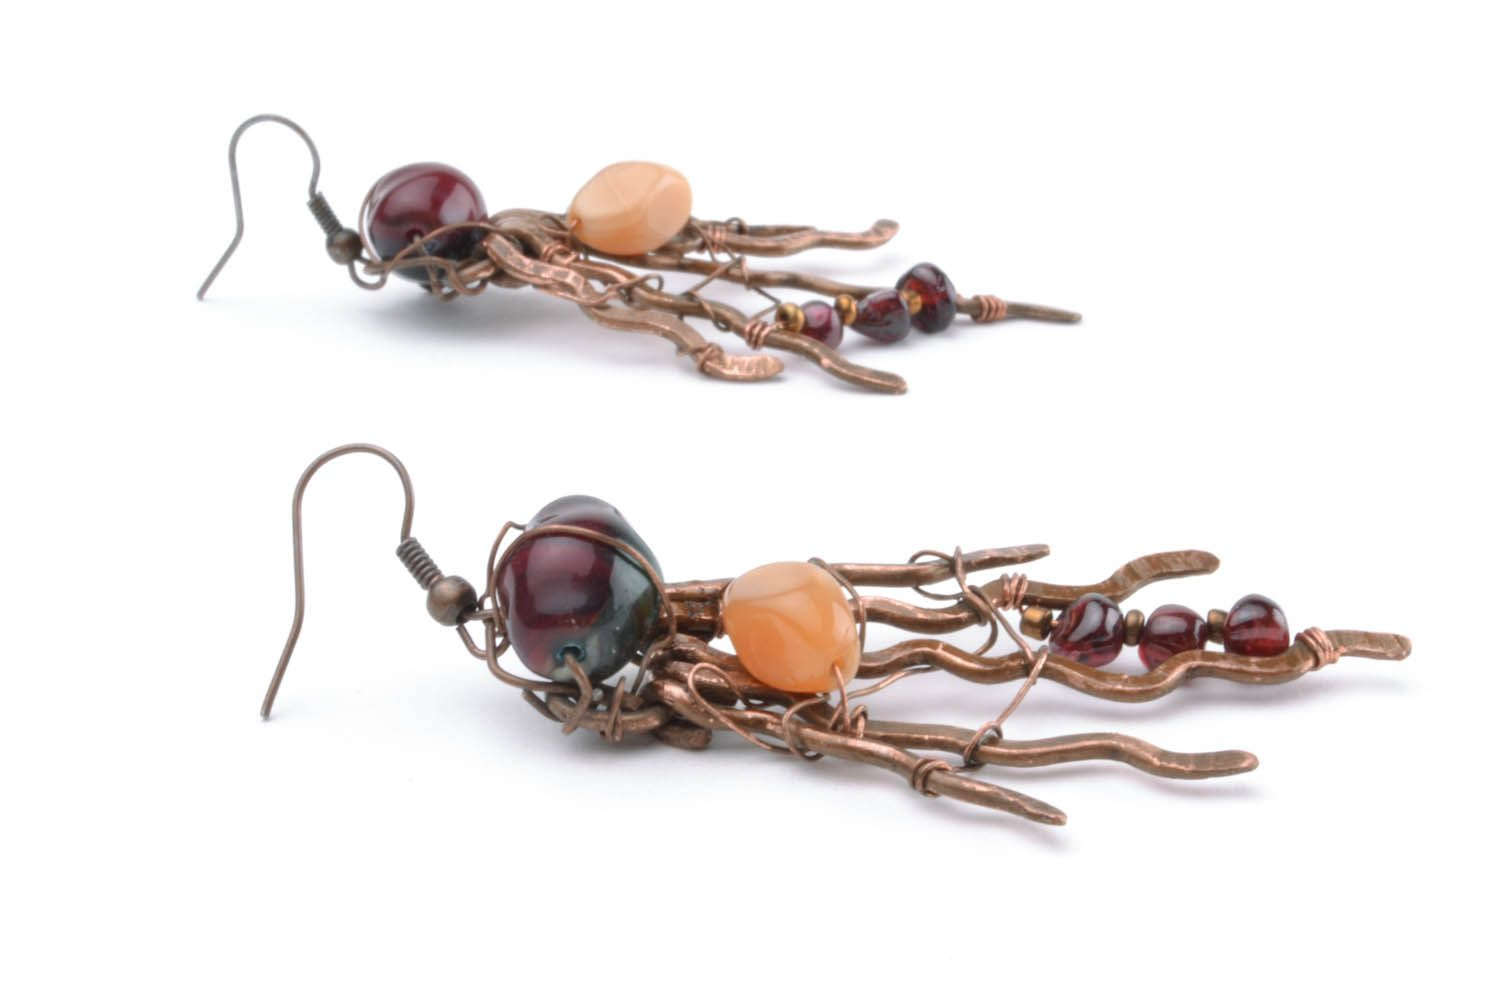 Copper earrings with natural stones photo 1